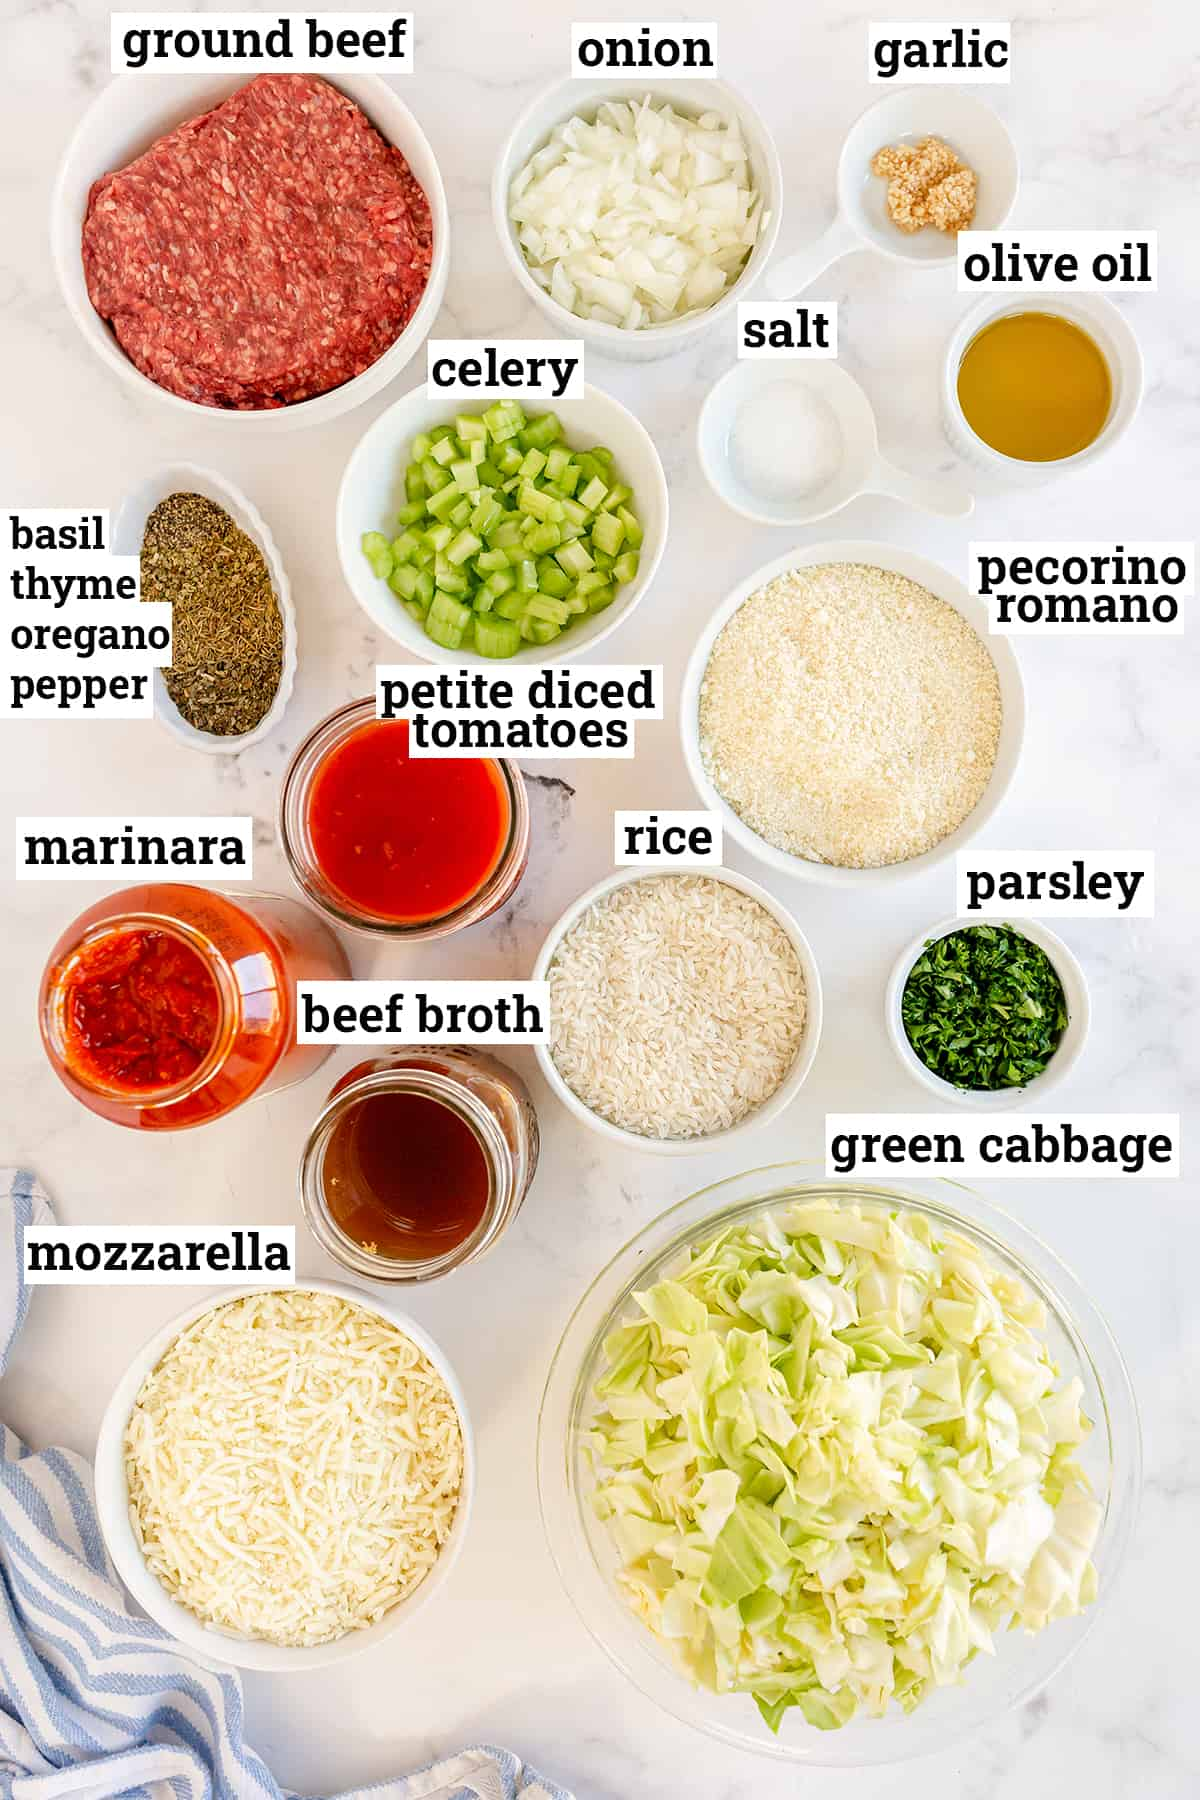 The ingredients needed to make Cabbage Roll Casserole with text overlay.